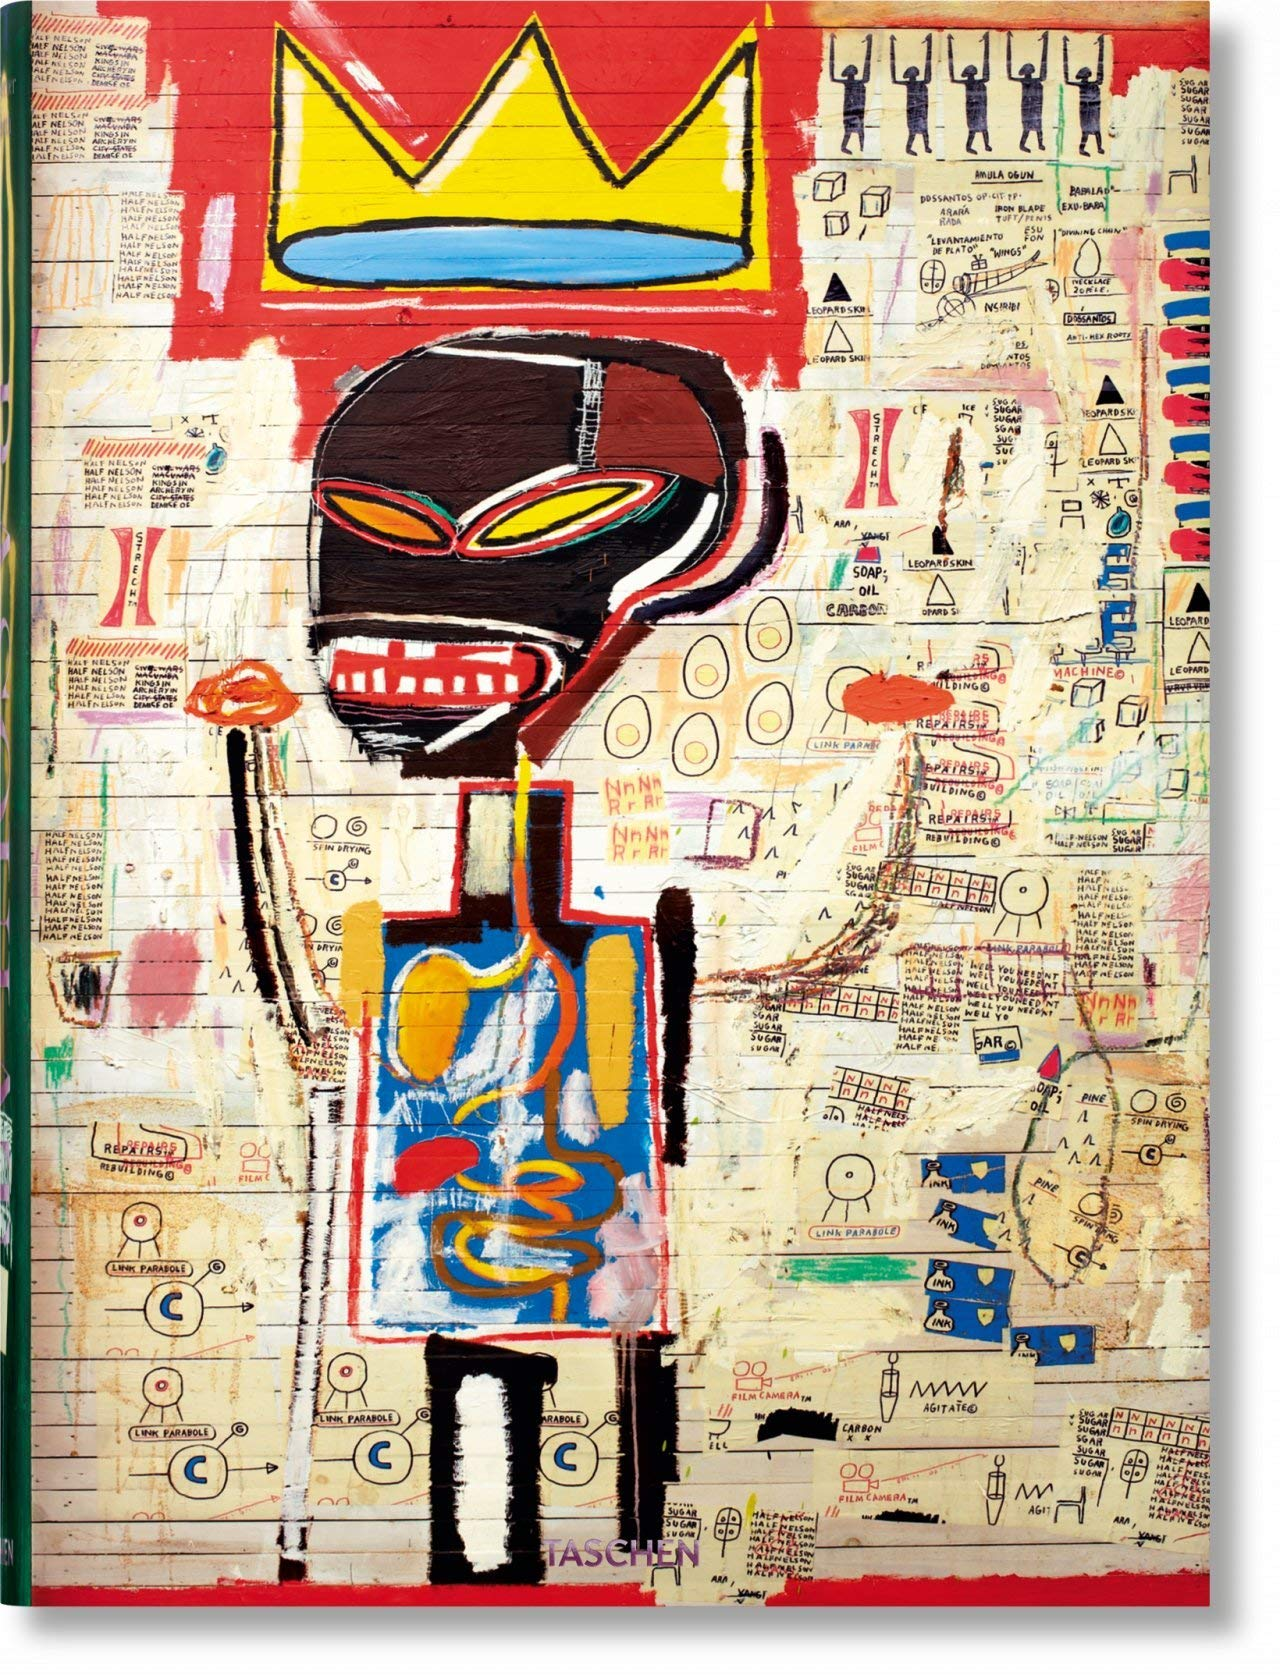 Jean-Michel Basquiat (Extra large)